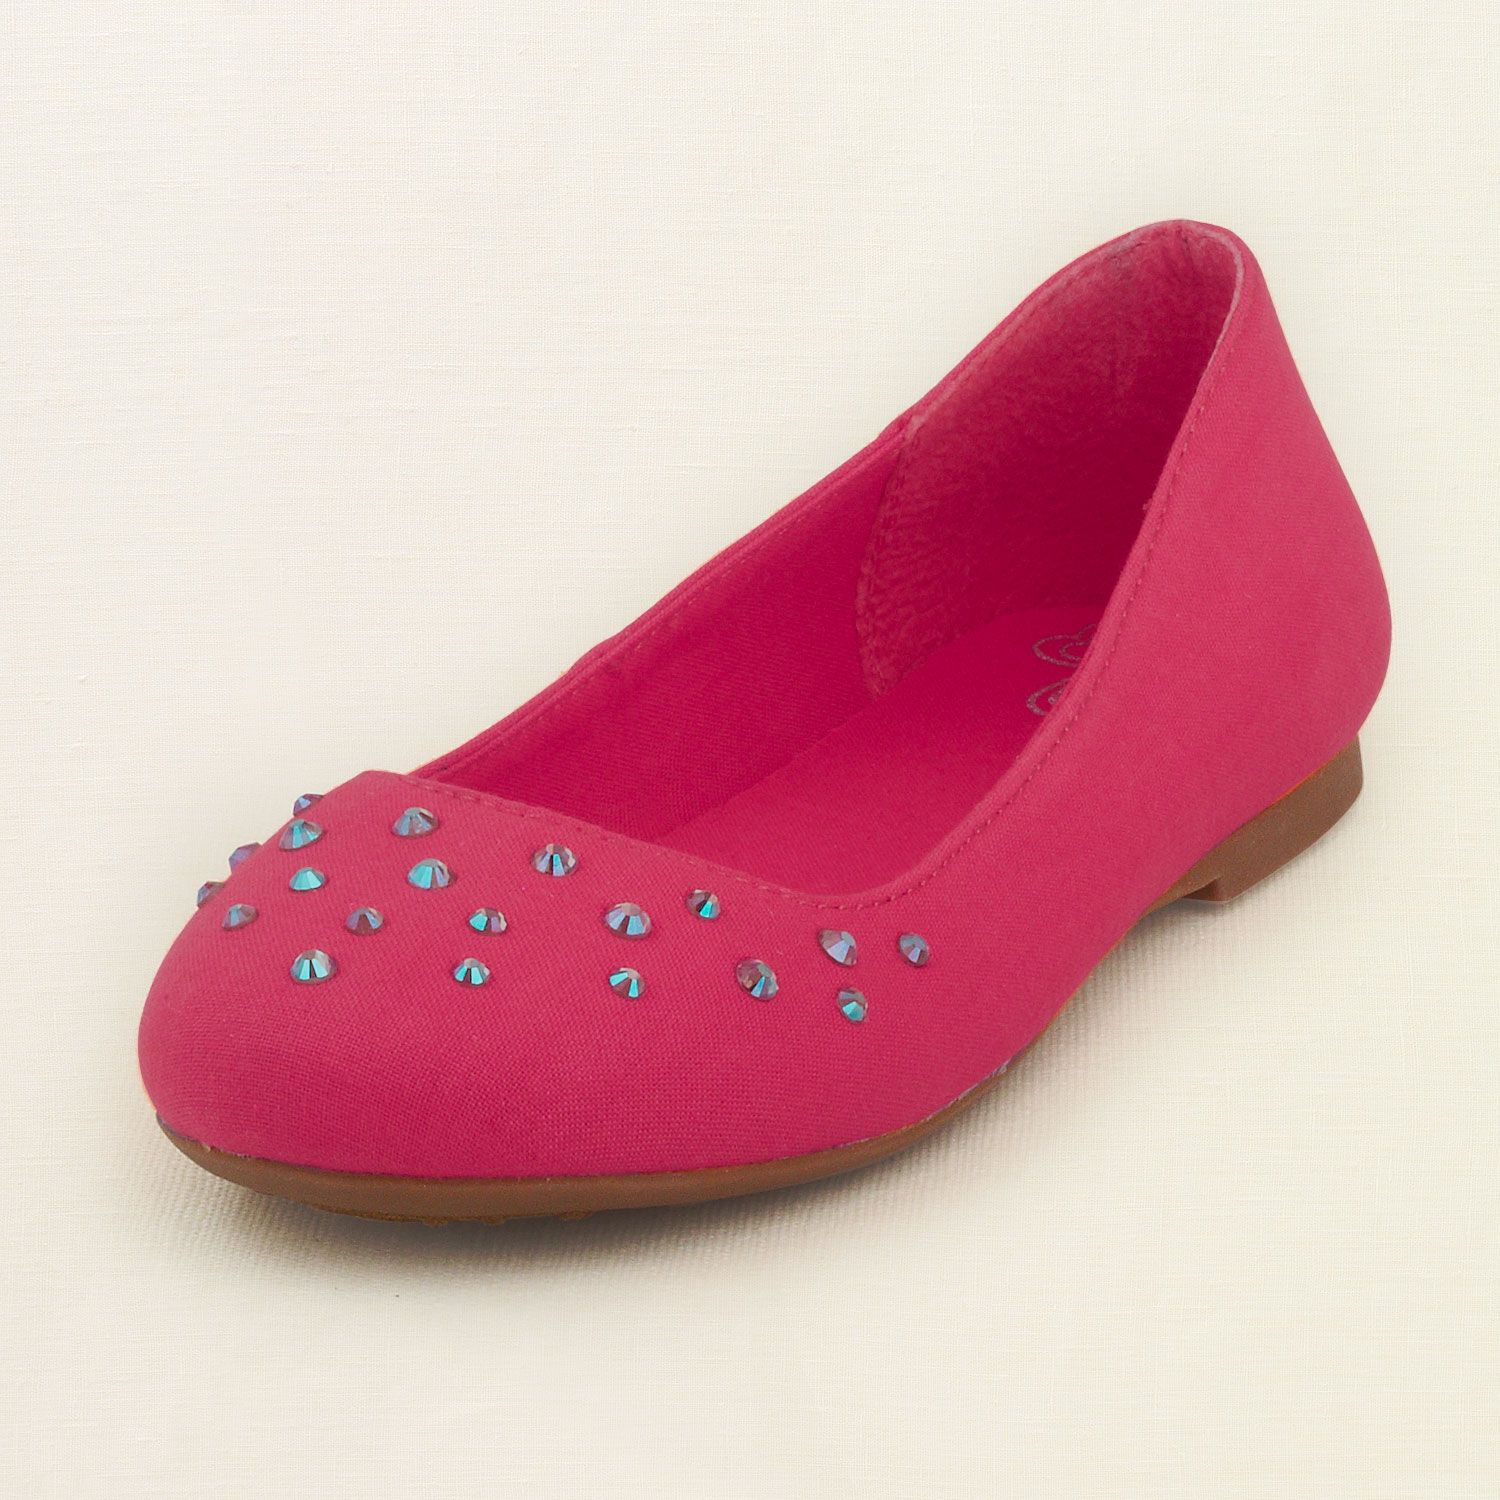 girl - shoes - ballet flats - rhinestone ballet flat | Children's Clothing | Kids Clothes | The Children's Place